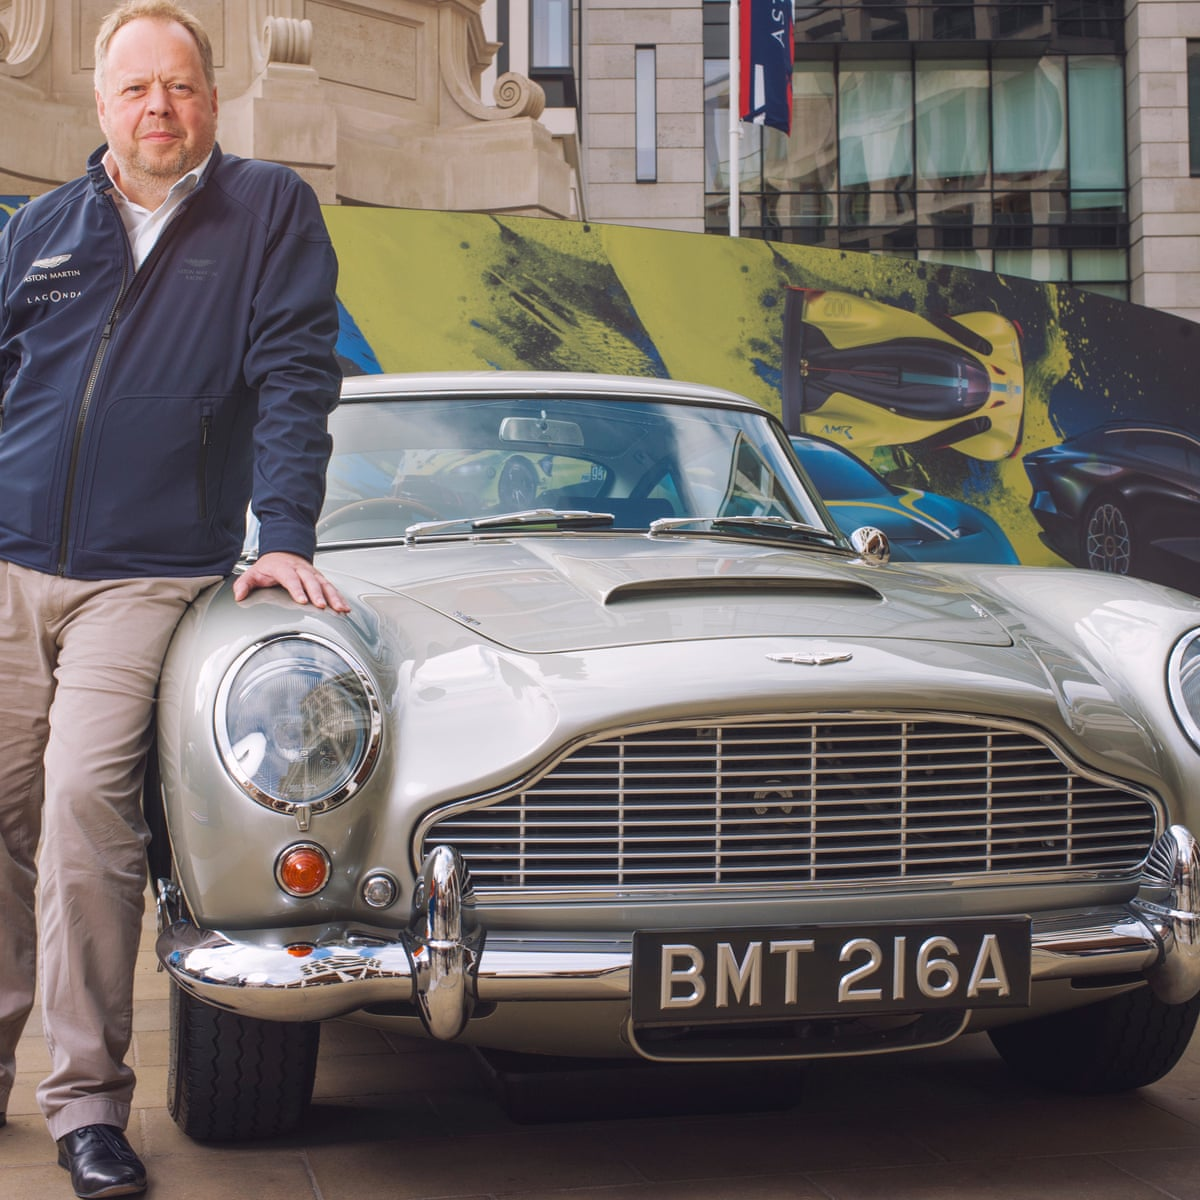 Aston Martin Confirms Sacking Of Chief After Share Collapse Aston Martin The Guardian